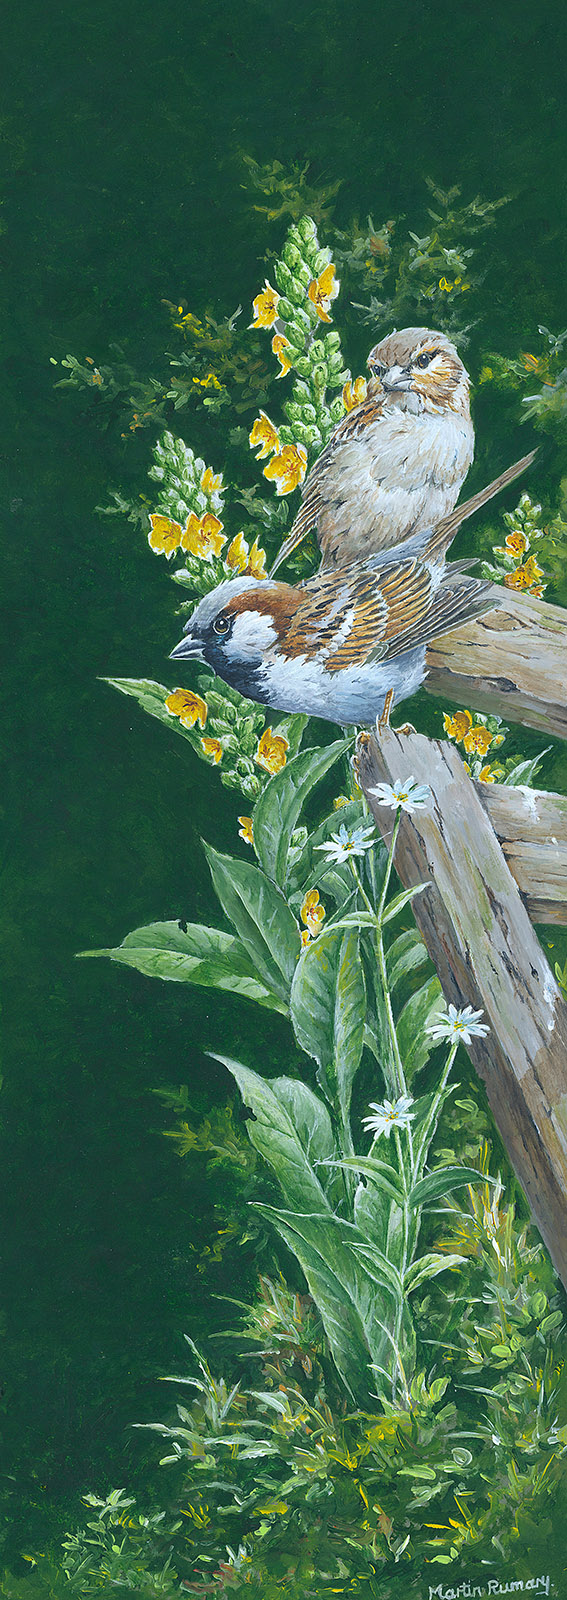 "House Sparrows By Martin Rumary Acrylic 6.5""x 18.5"" (image size) £450"